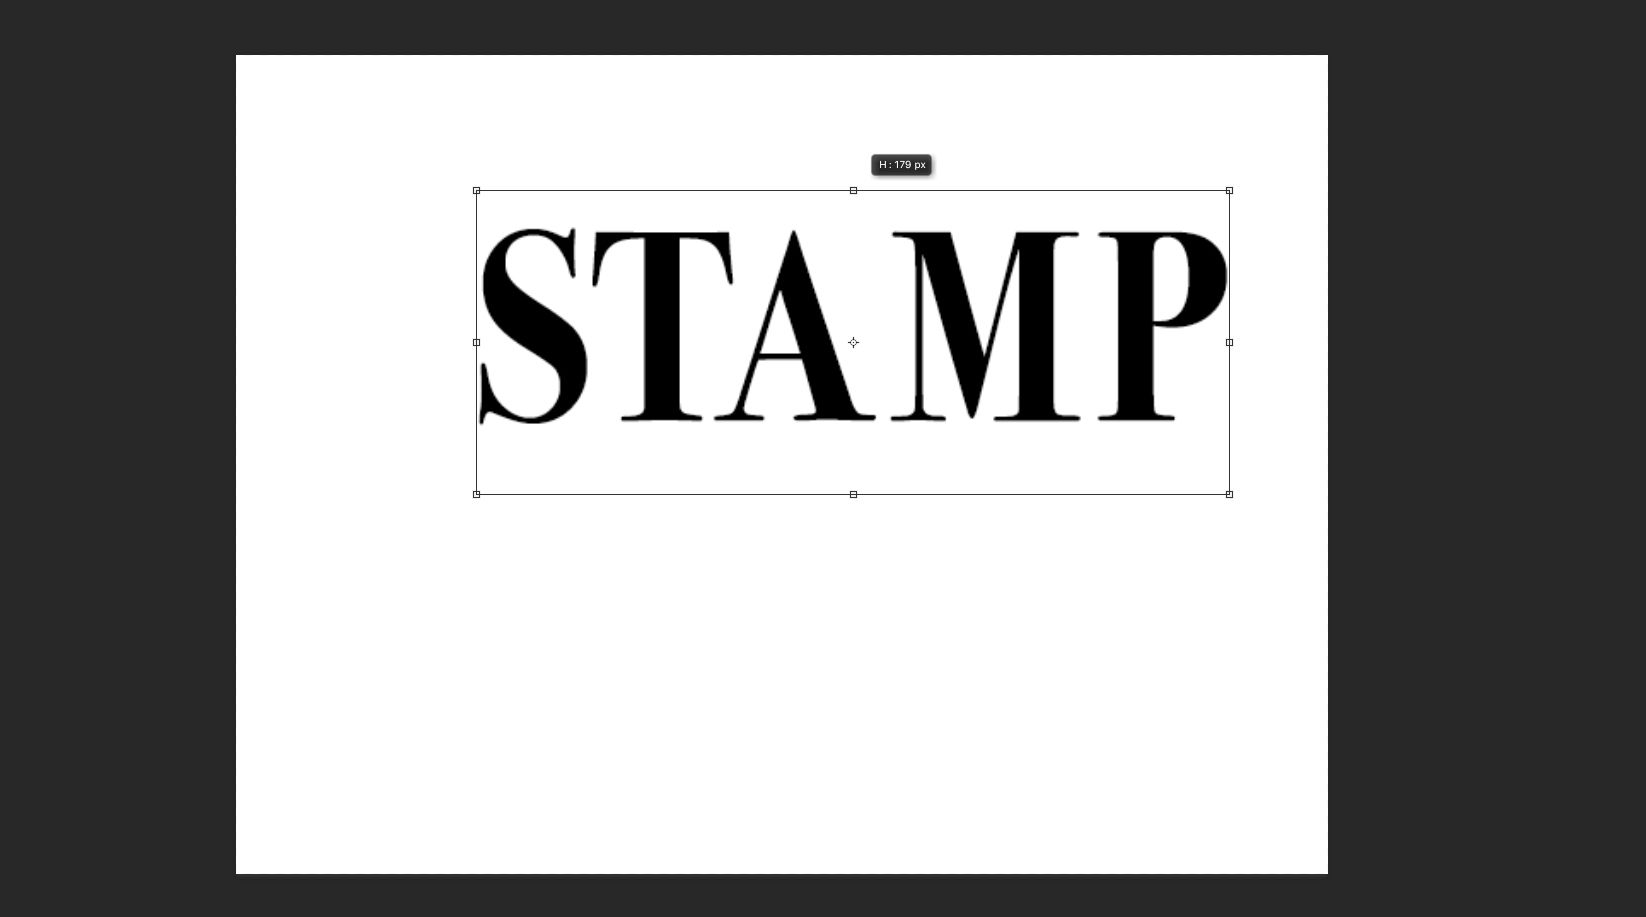 The word stamp is elongated using the Move Tool